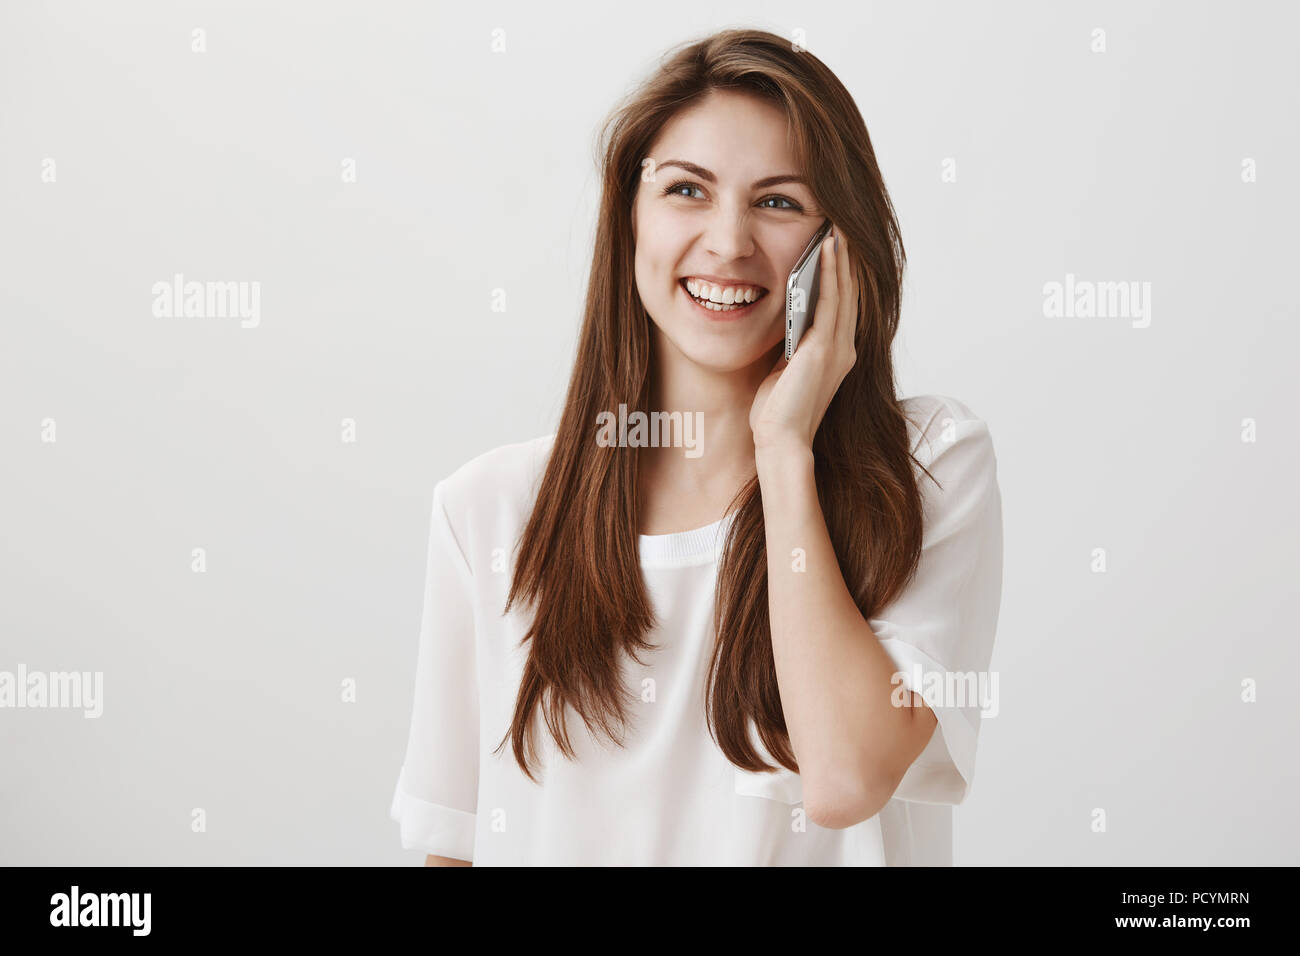 Her you loud and clear. Portrait of positive attractive female student laughing out loud and smiling broadly while talking on smartphone and looking u - Stock Image